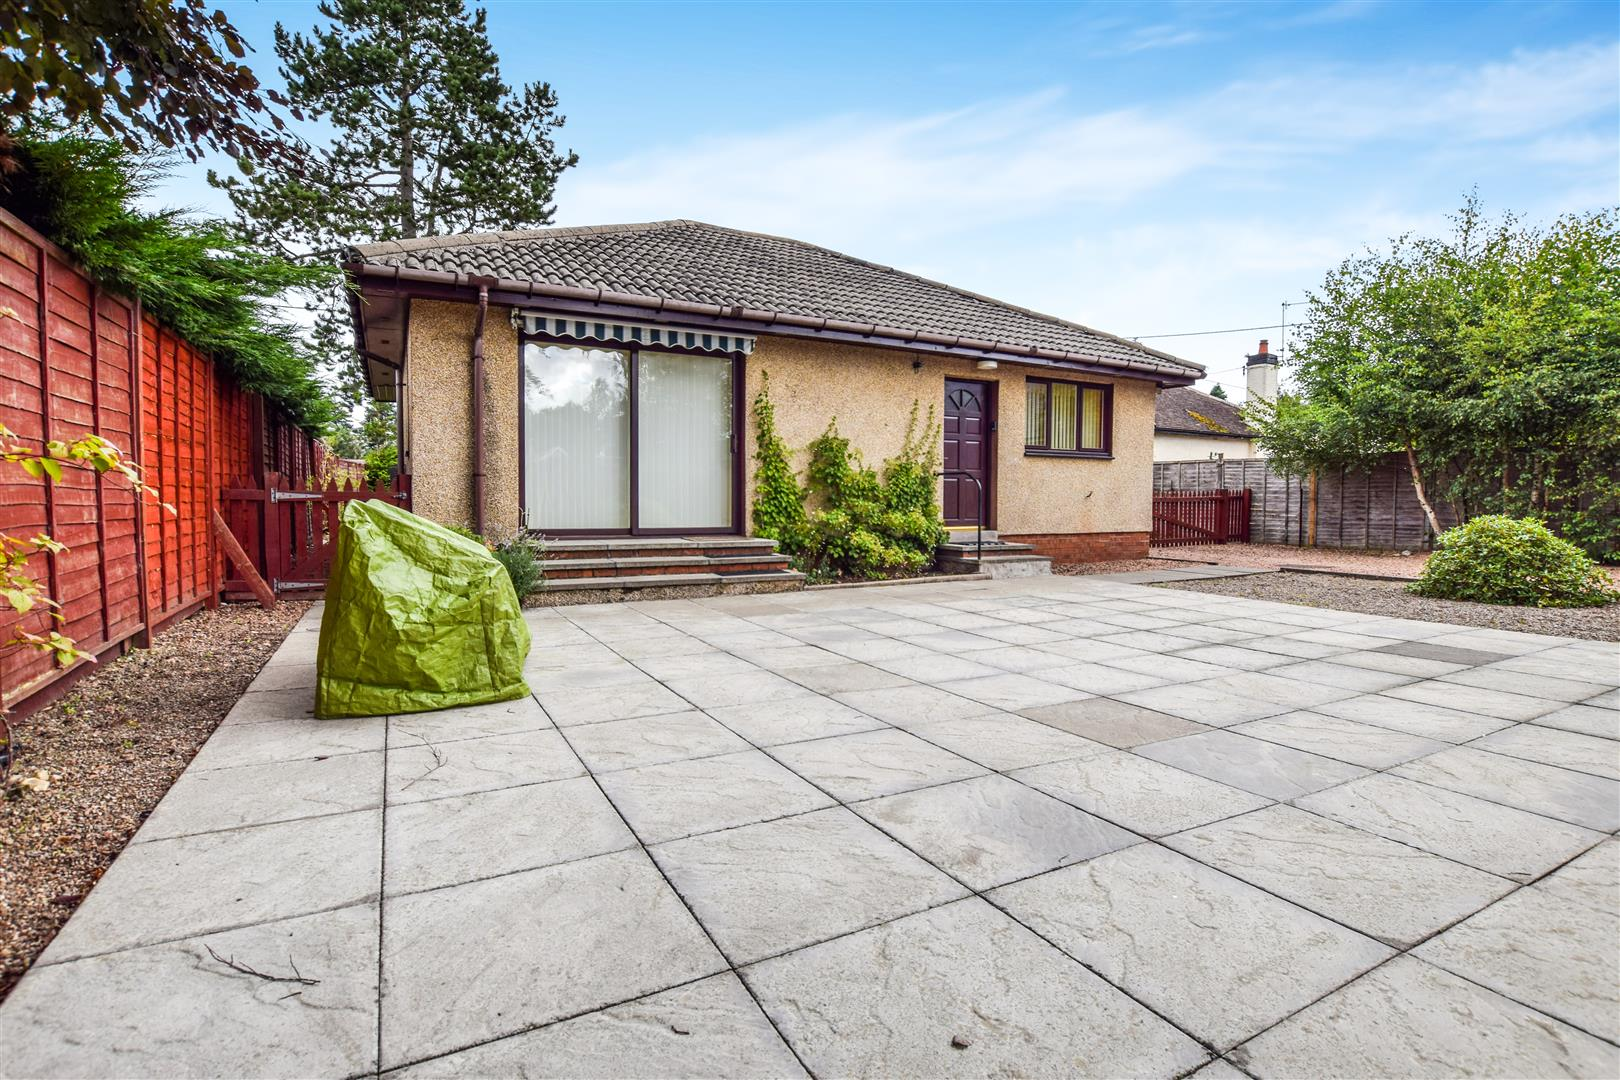 Drumhaven, Golf Course Road, Blairgowrie, Perthshire, PH10 6LJ, UK